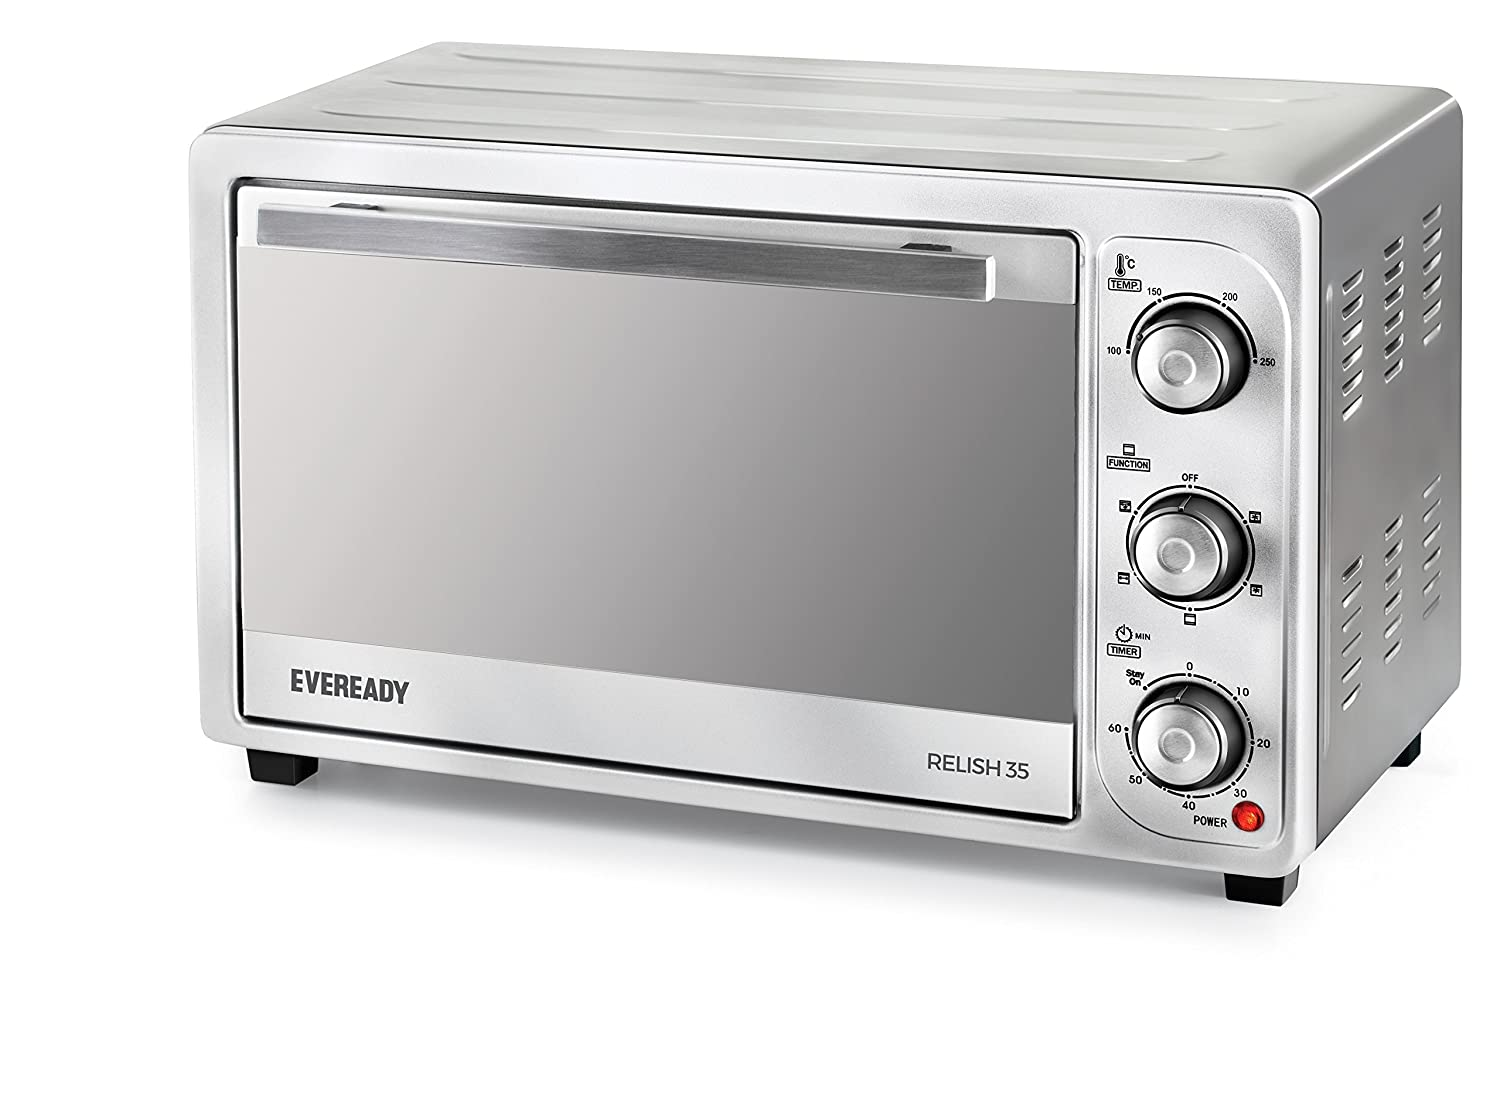 Eveready Relish 35 1500-Watt Oven Toaster Grill (Silver)